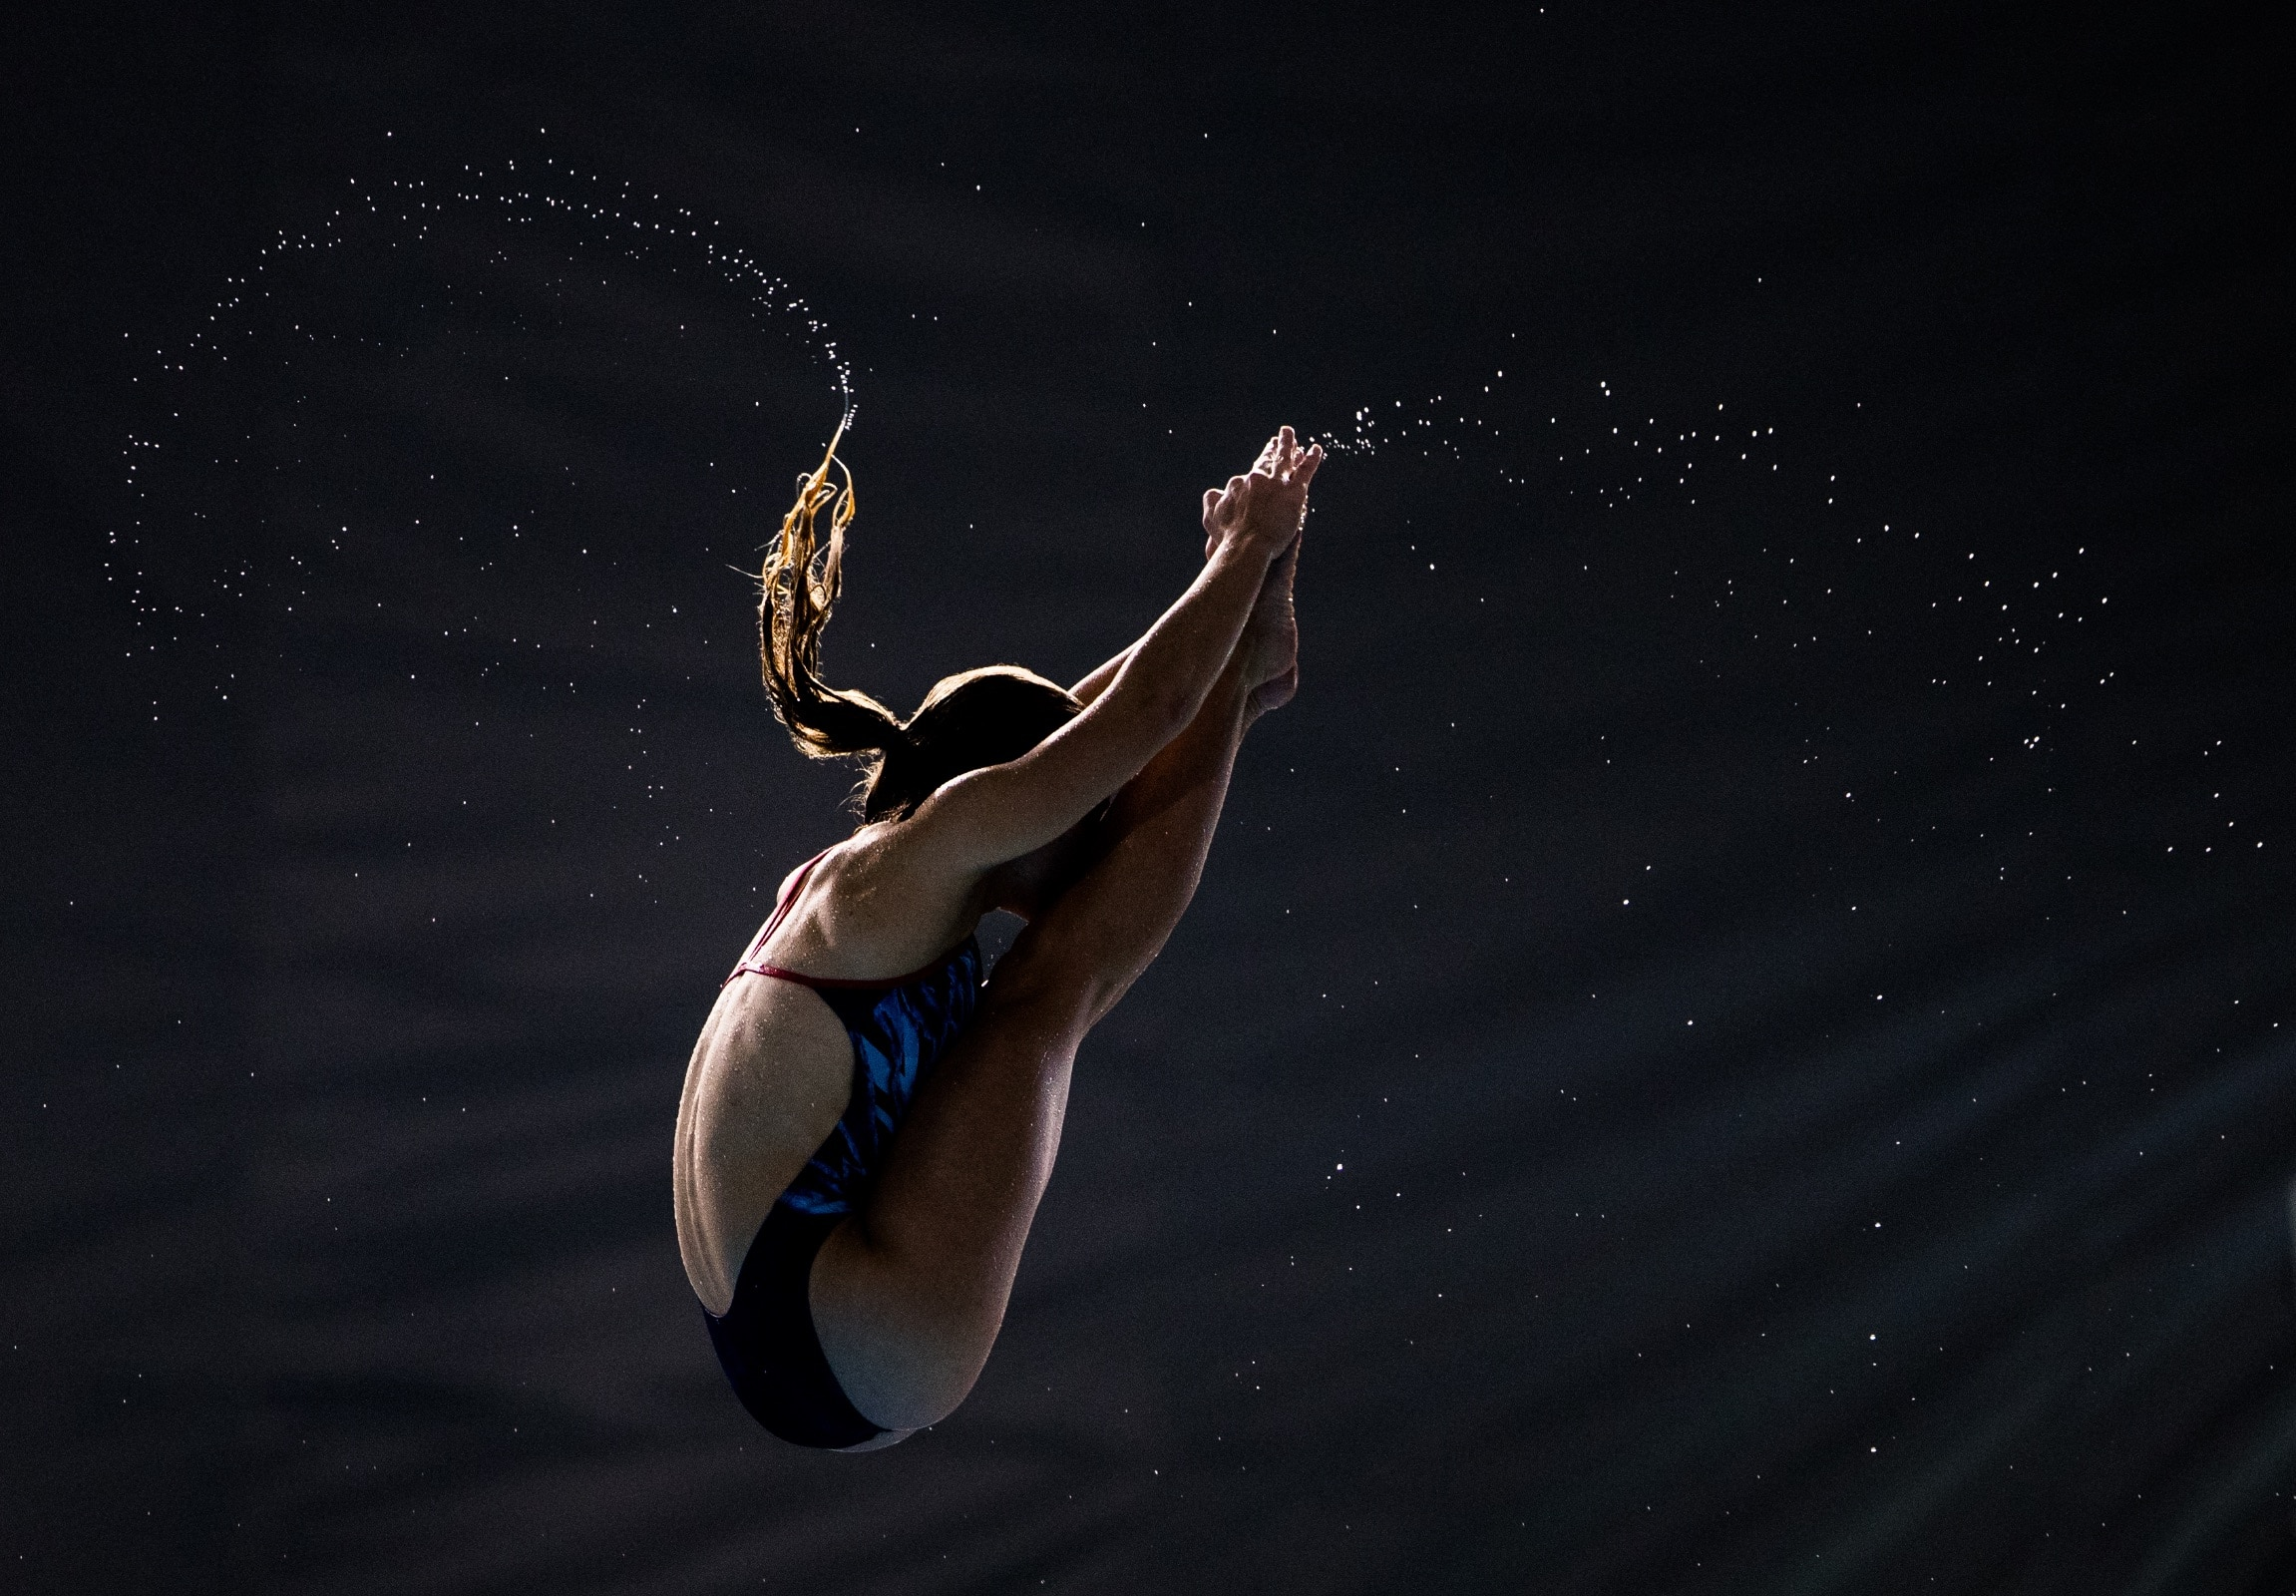 Buenos Aires 2018 - Diving